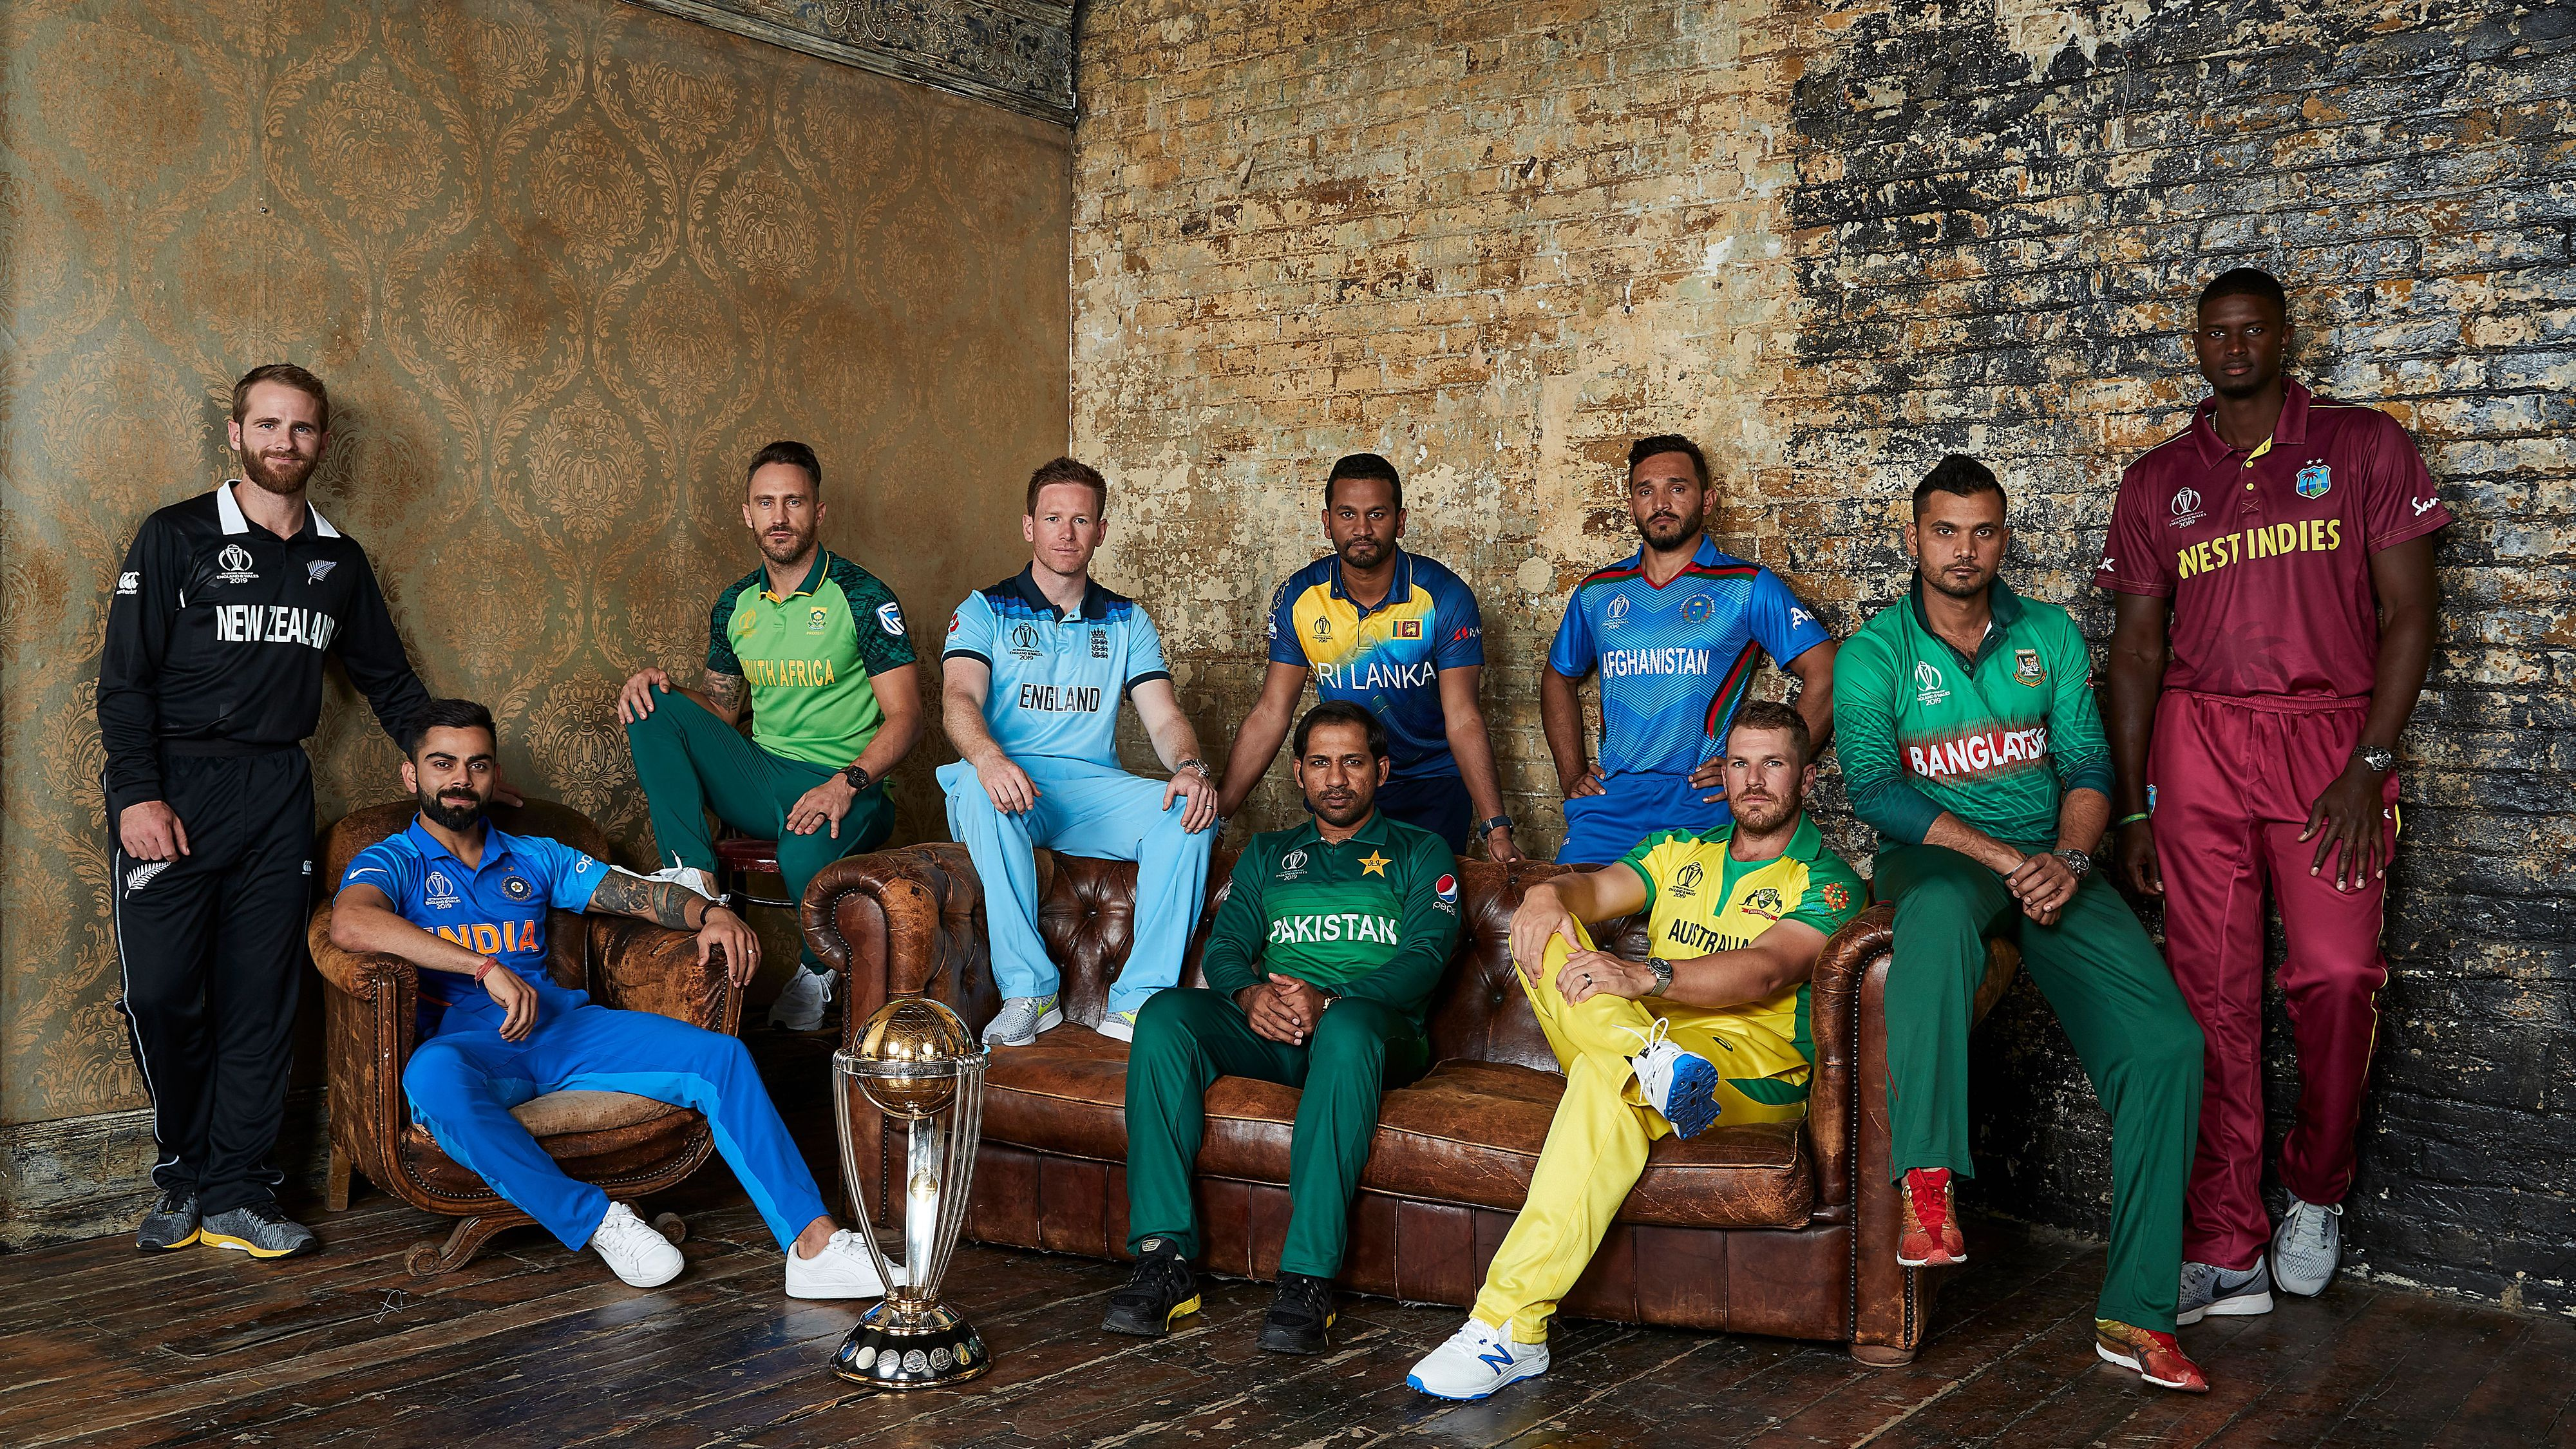 Captains of all teams of ICC Cricket World Cup 201